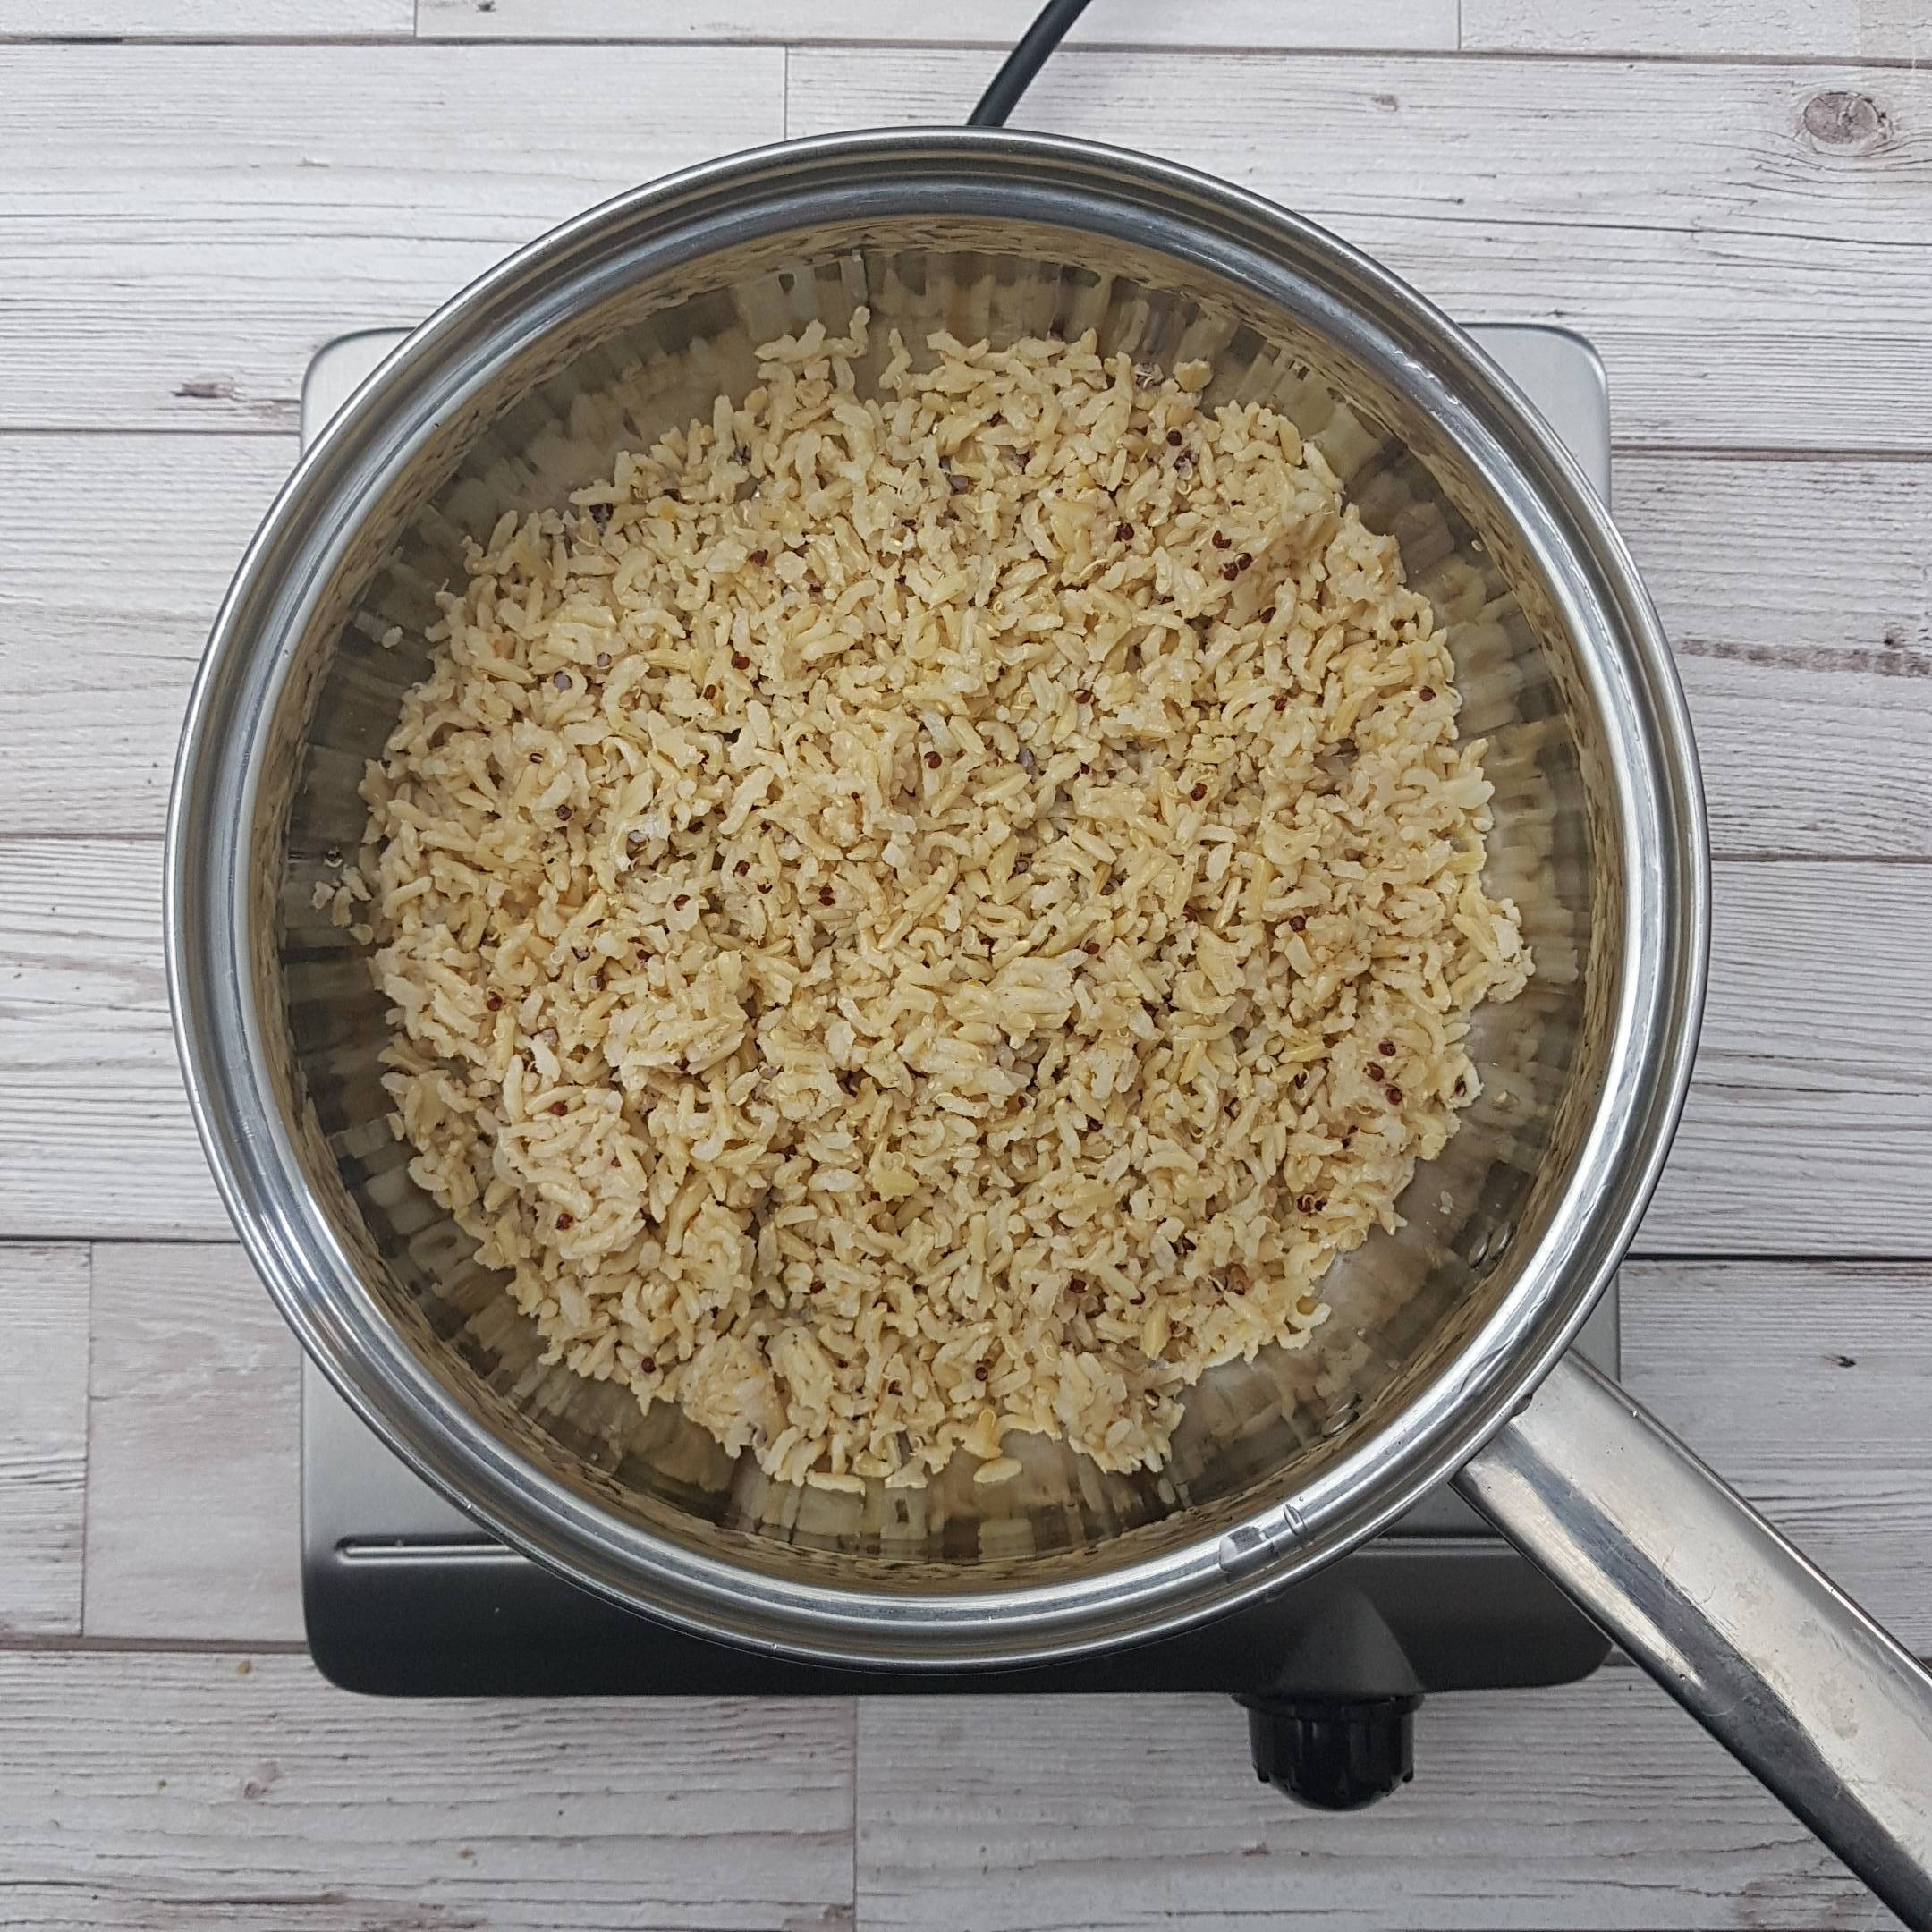 Add a splash of water to a pan and heat the rice for 2 minutes until hot.  (or follow the packet instructions for microwave).